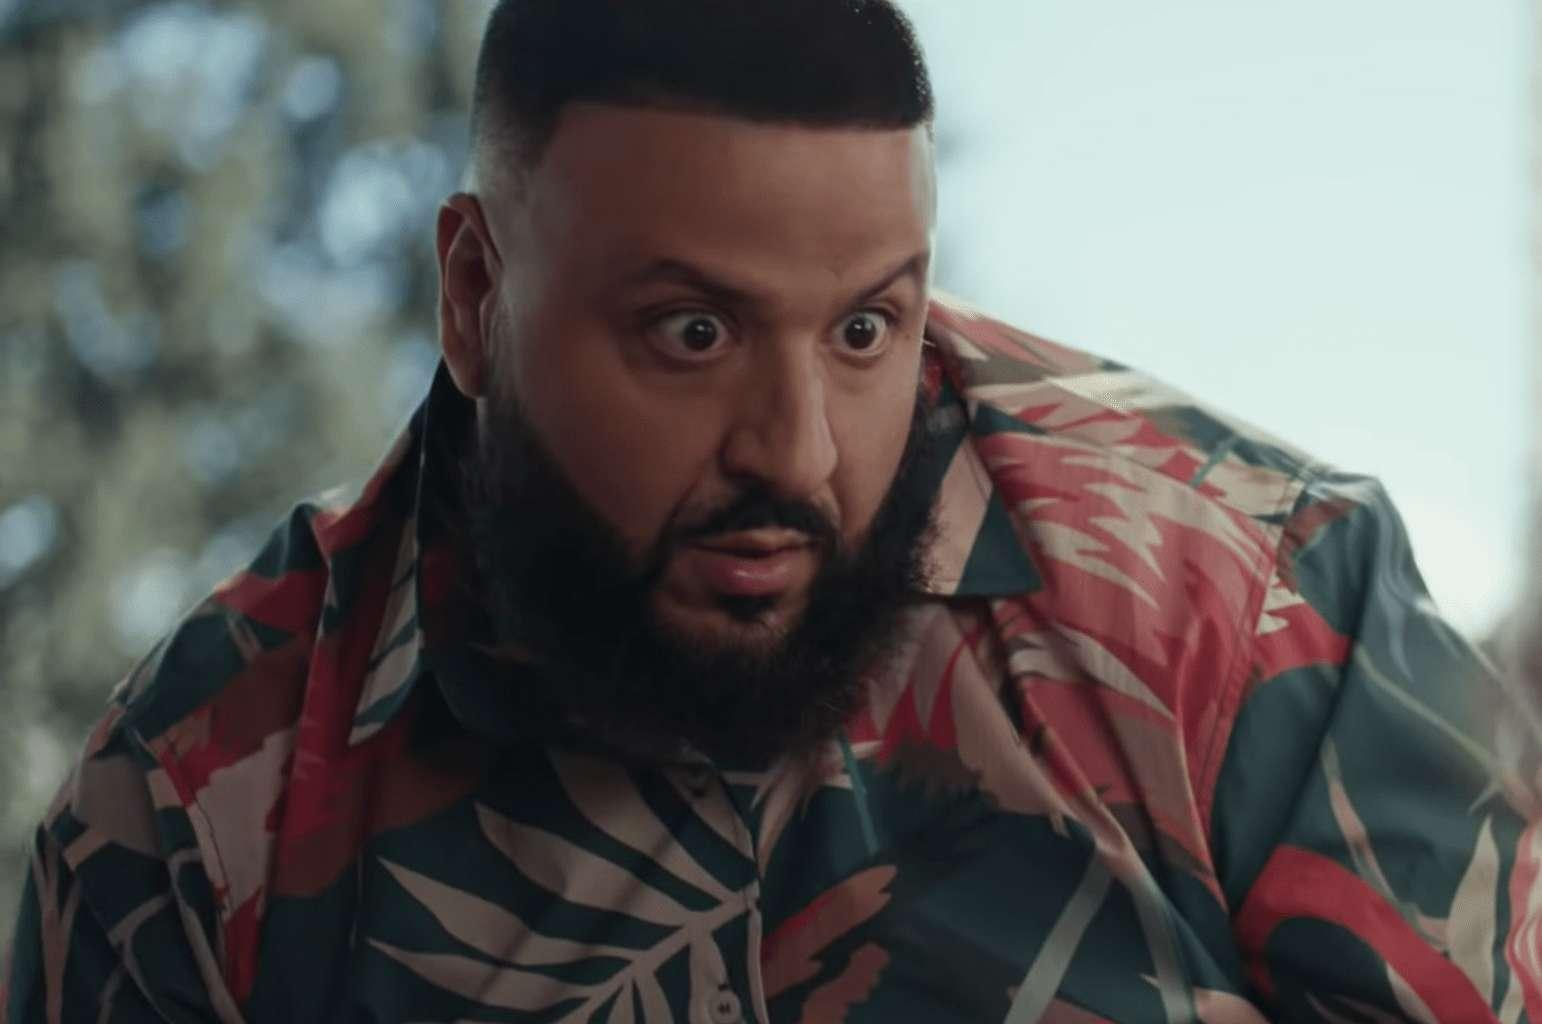 DJ Khaled Fan In Skimpy Clothes Won't Stop Twerking For Him On IG Live And He Begs: 'Talk To Me Normal!'